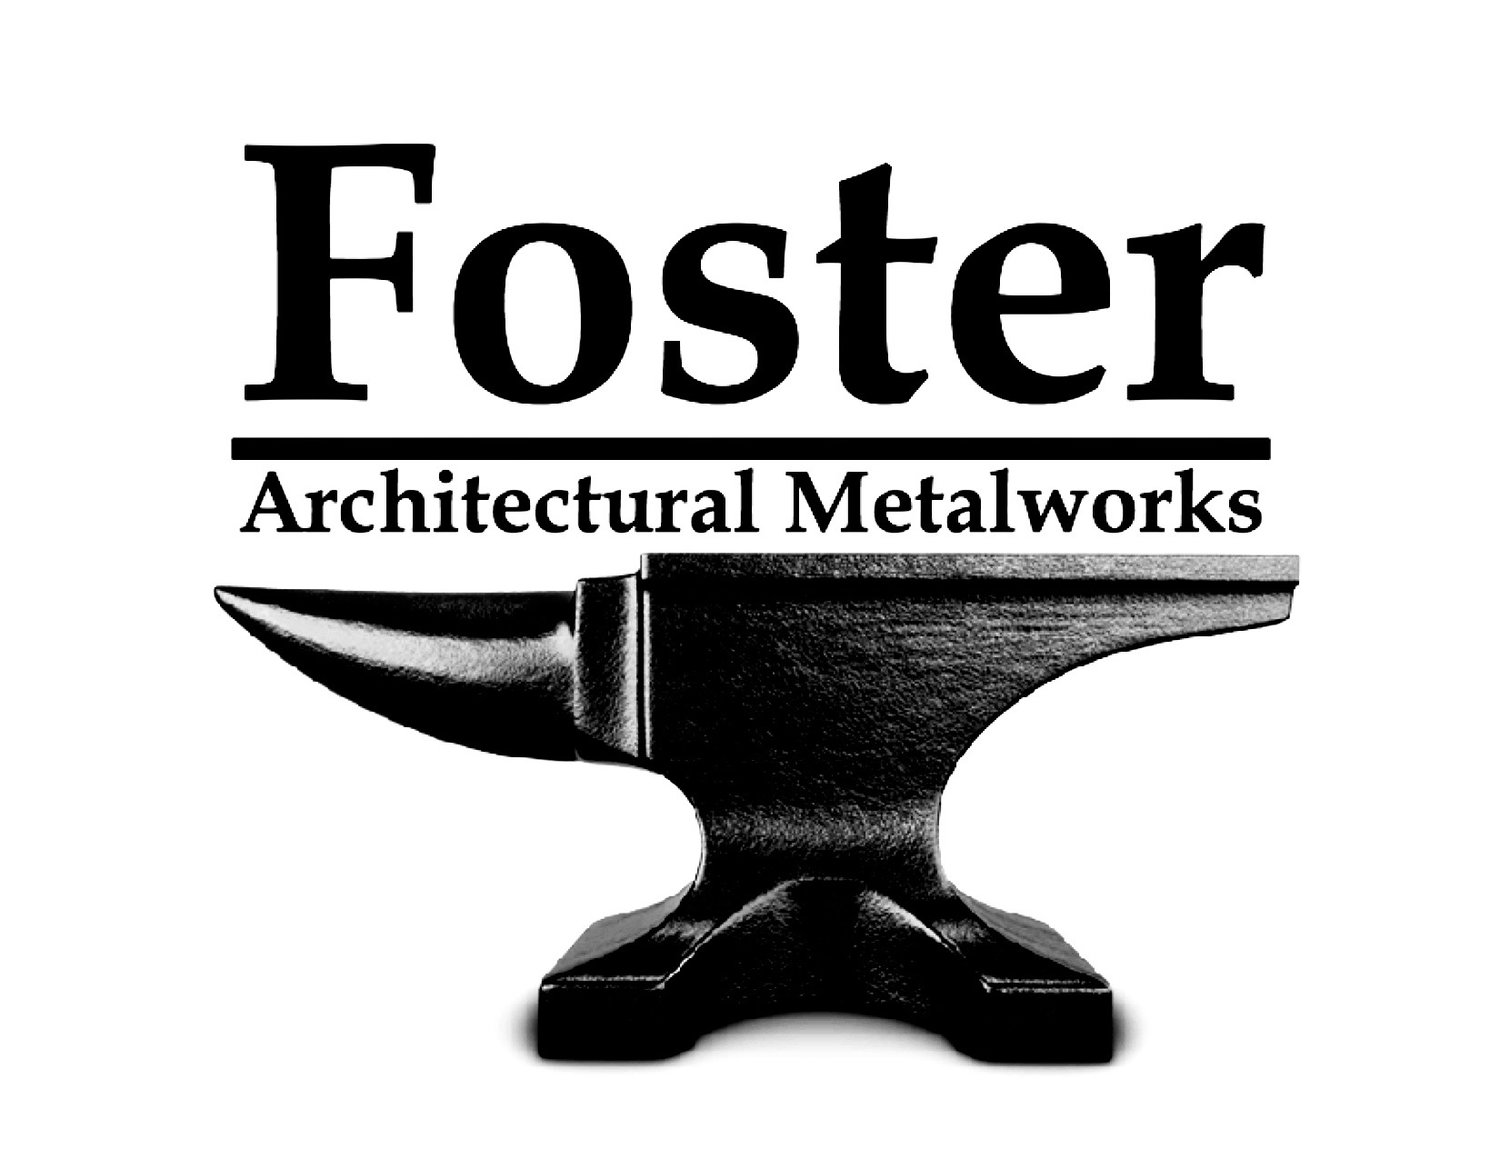 Foster Architectural Metalworks